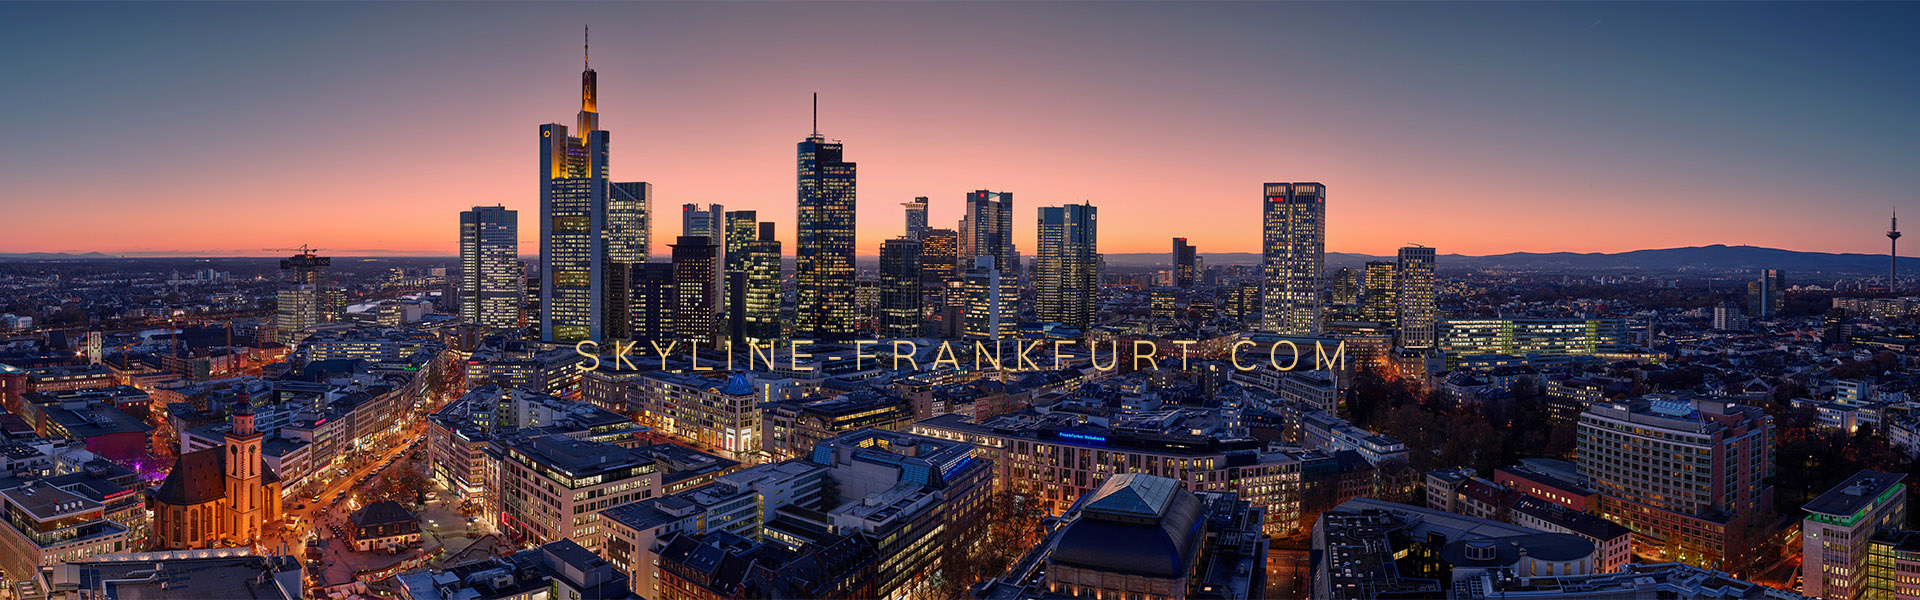 home skyline frankfurt fotos und panoramafotos. Black Bedroom Furniture Sets. Home Design Ideas